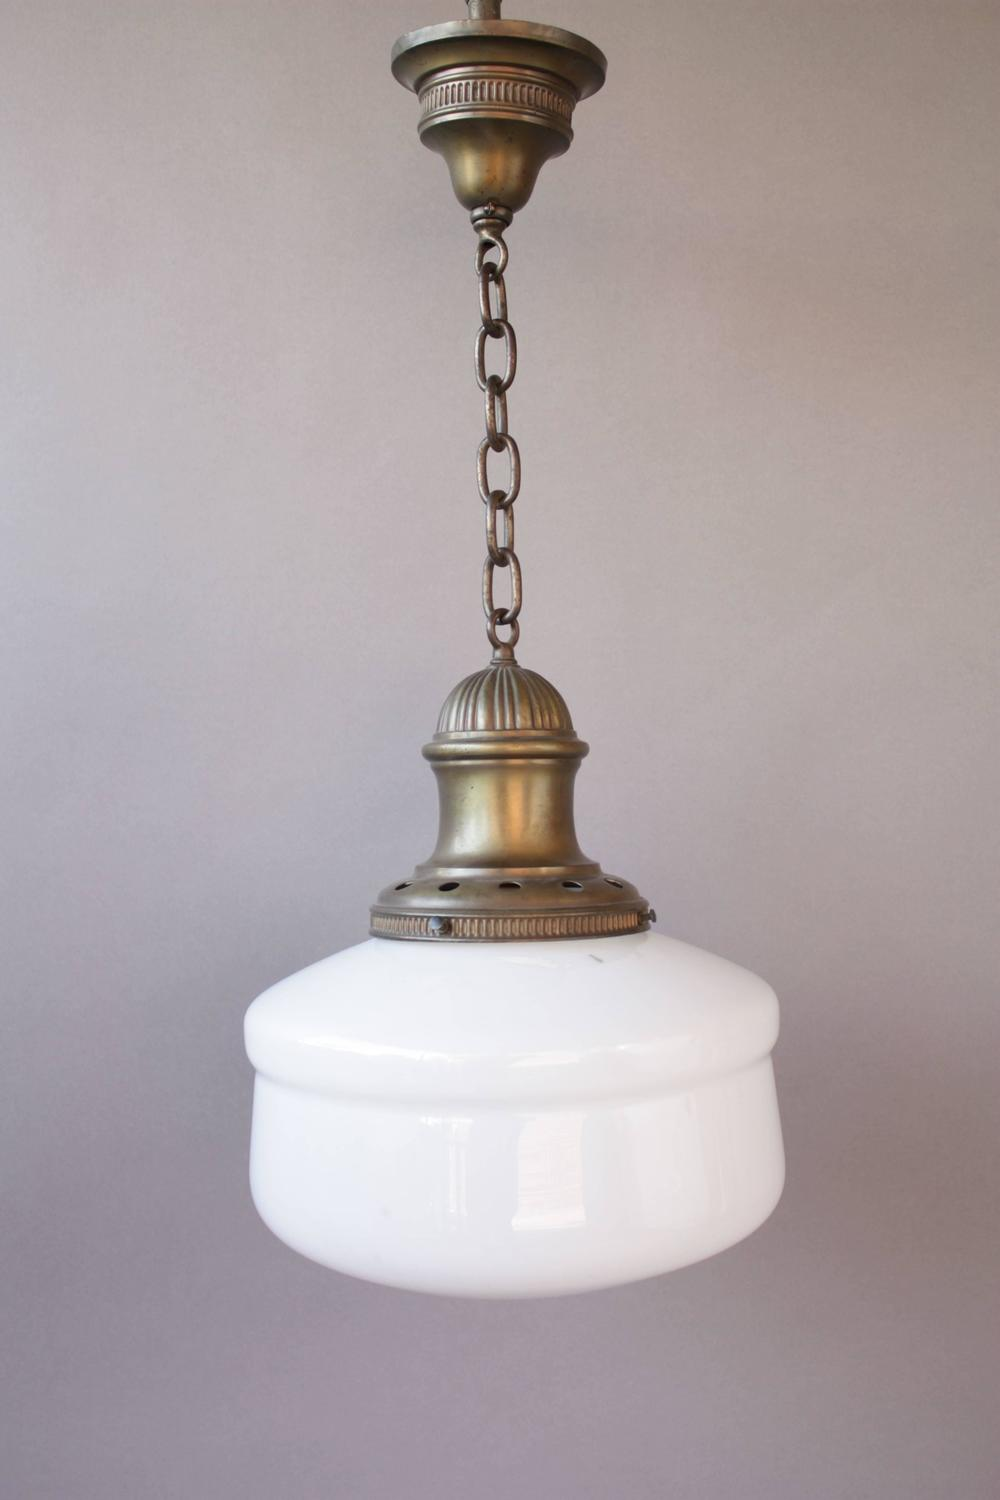 1920s bathroom light fixtures simple 1920s brass school house pendant at 1stdibs 15263